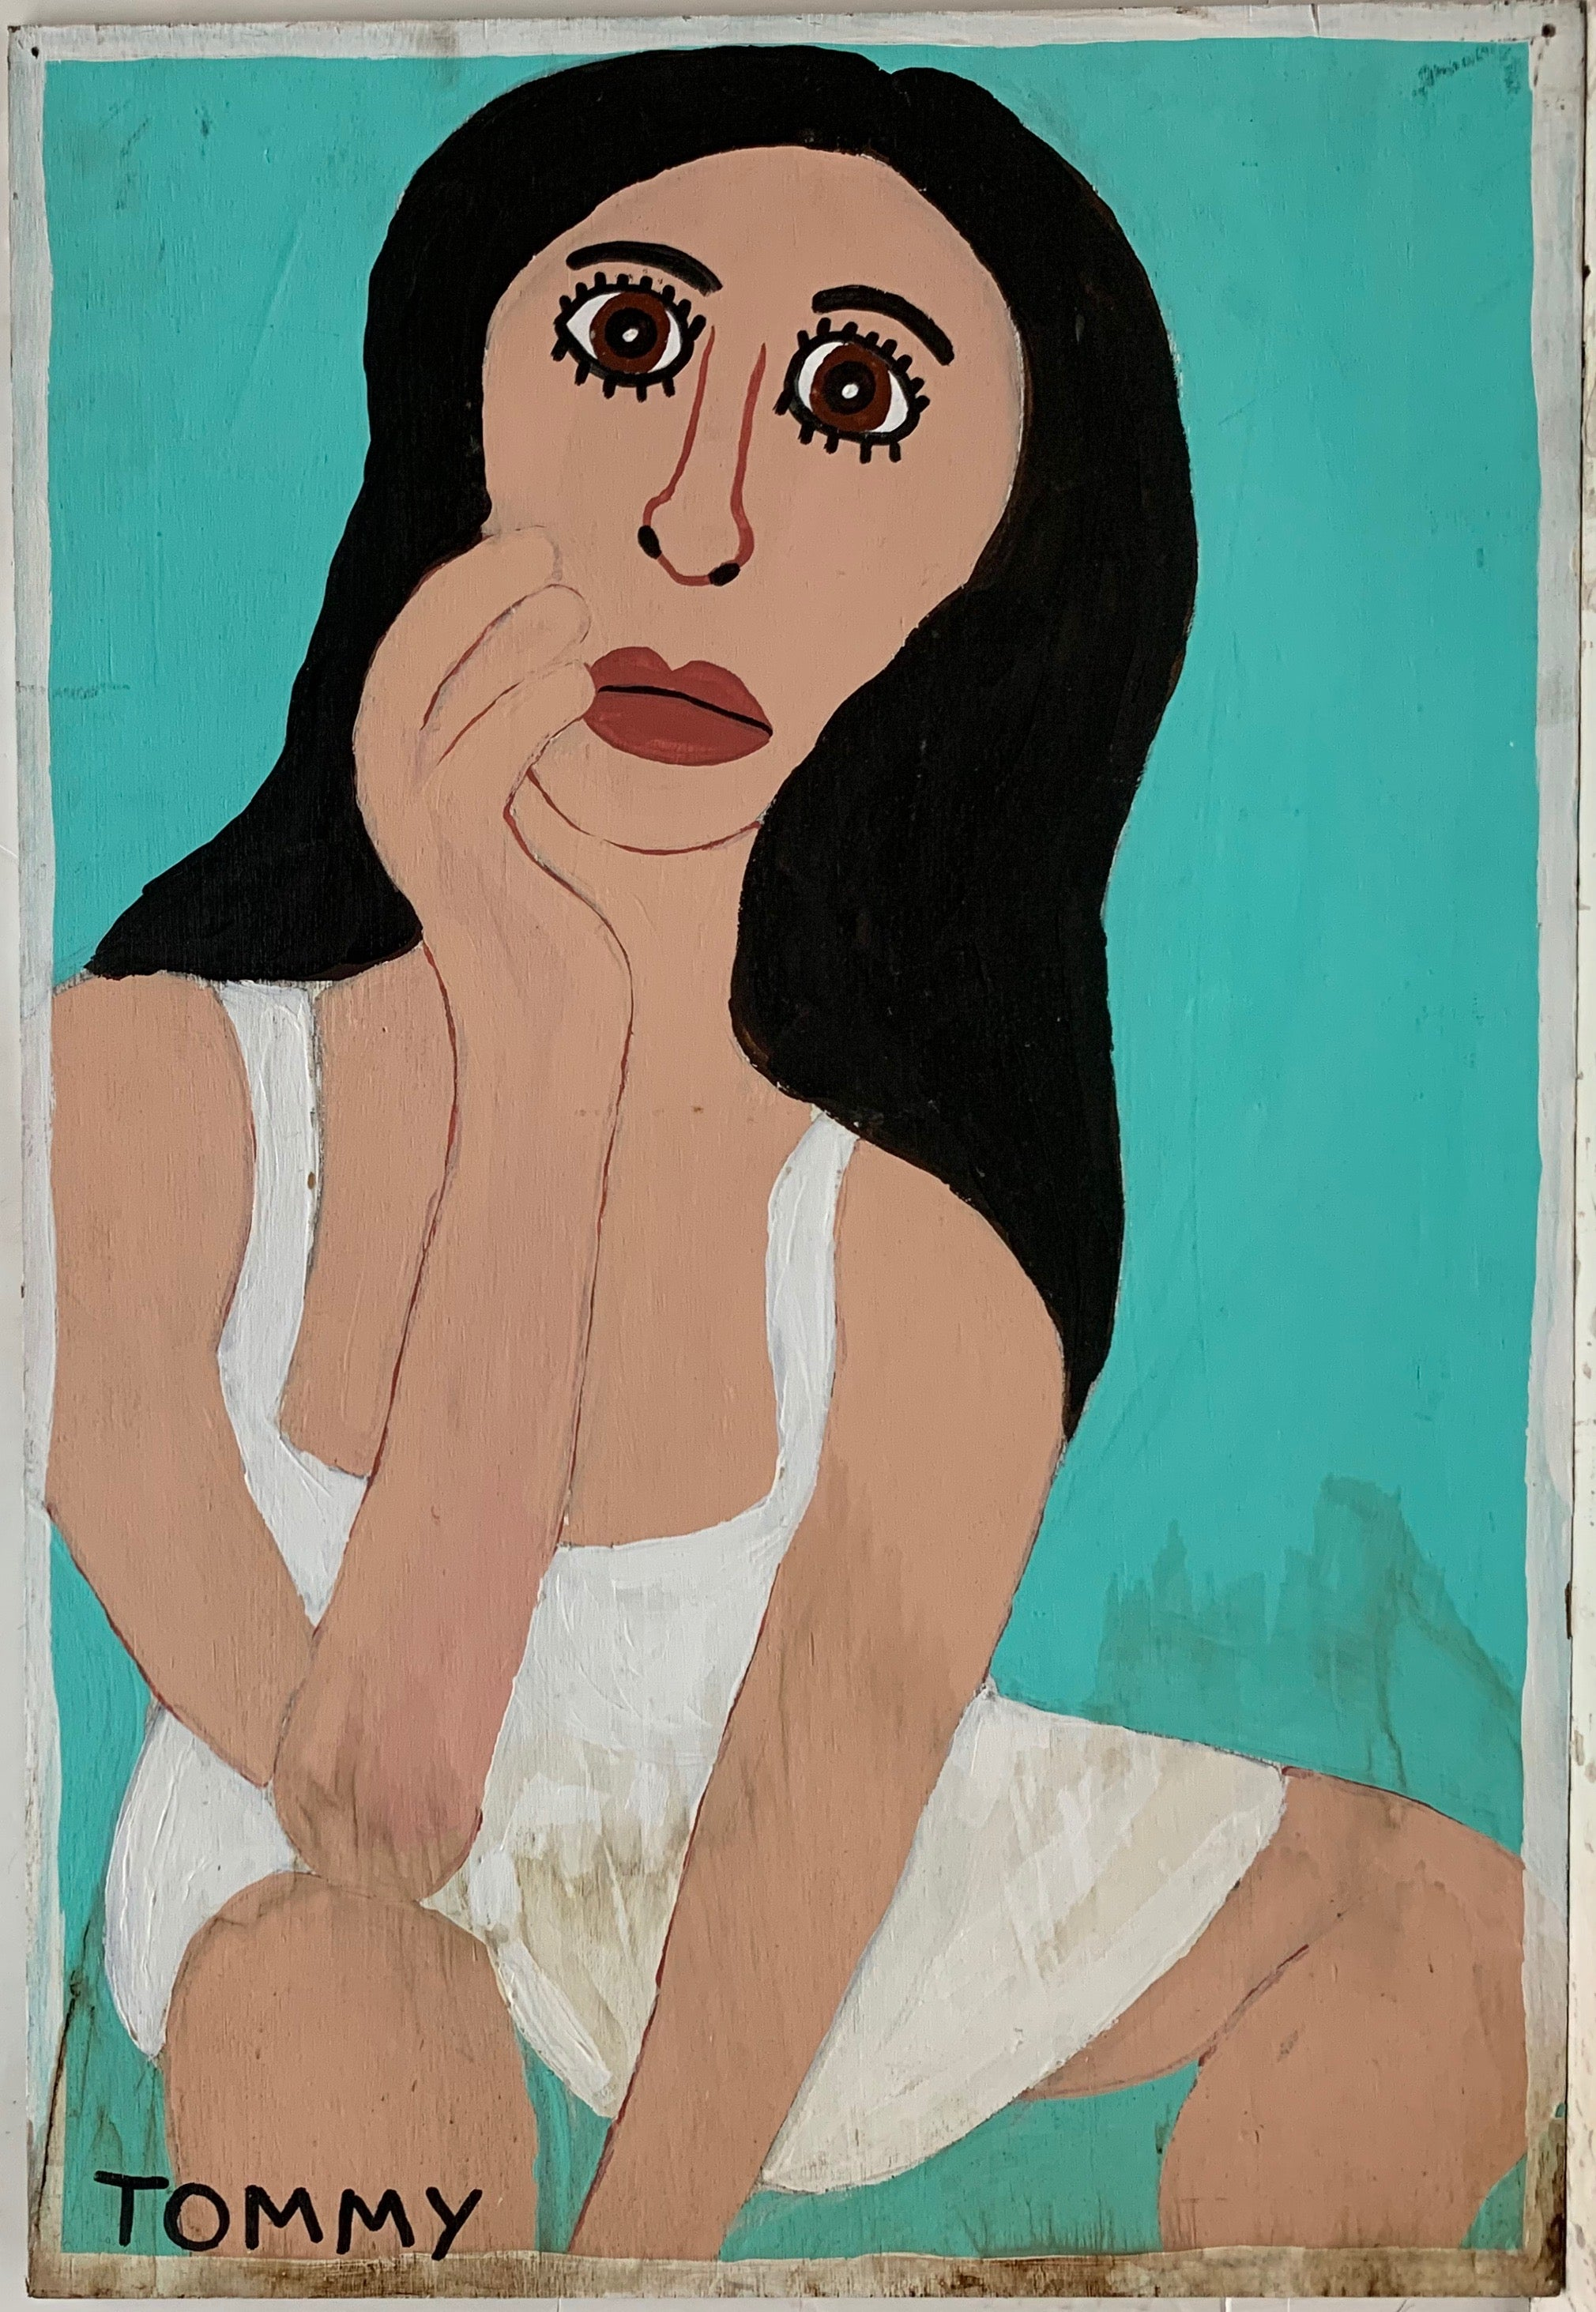 A Tommy Cheng portrait of a woman which black hair and white dress with a worried look on her face.